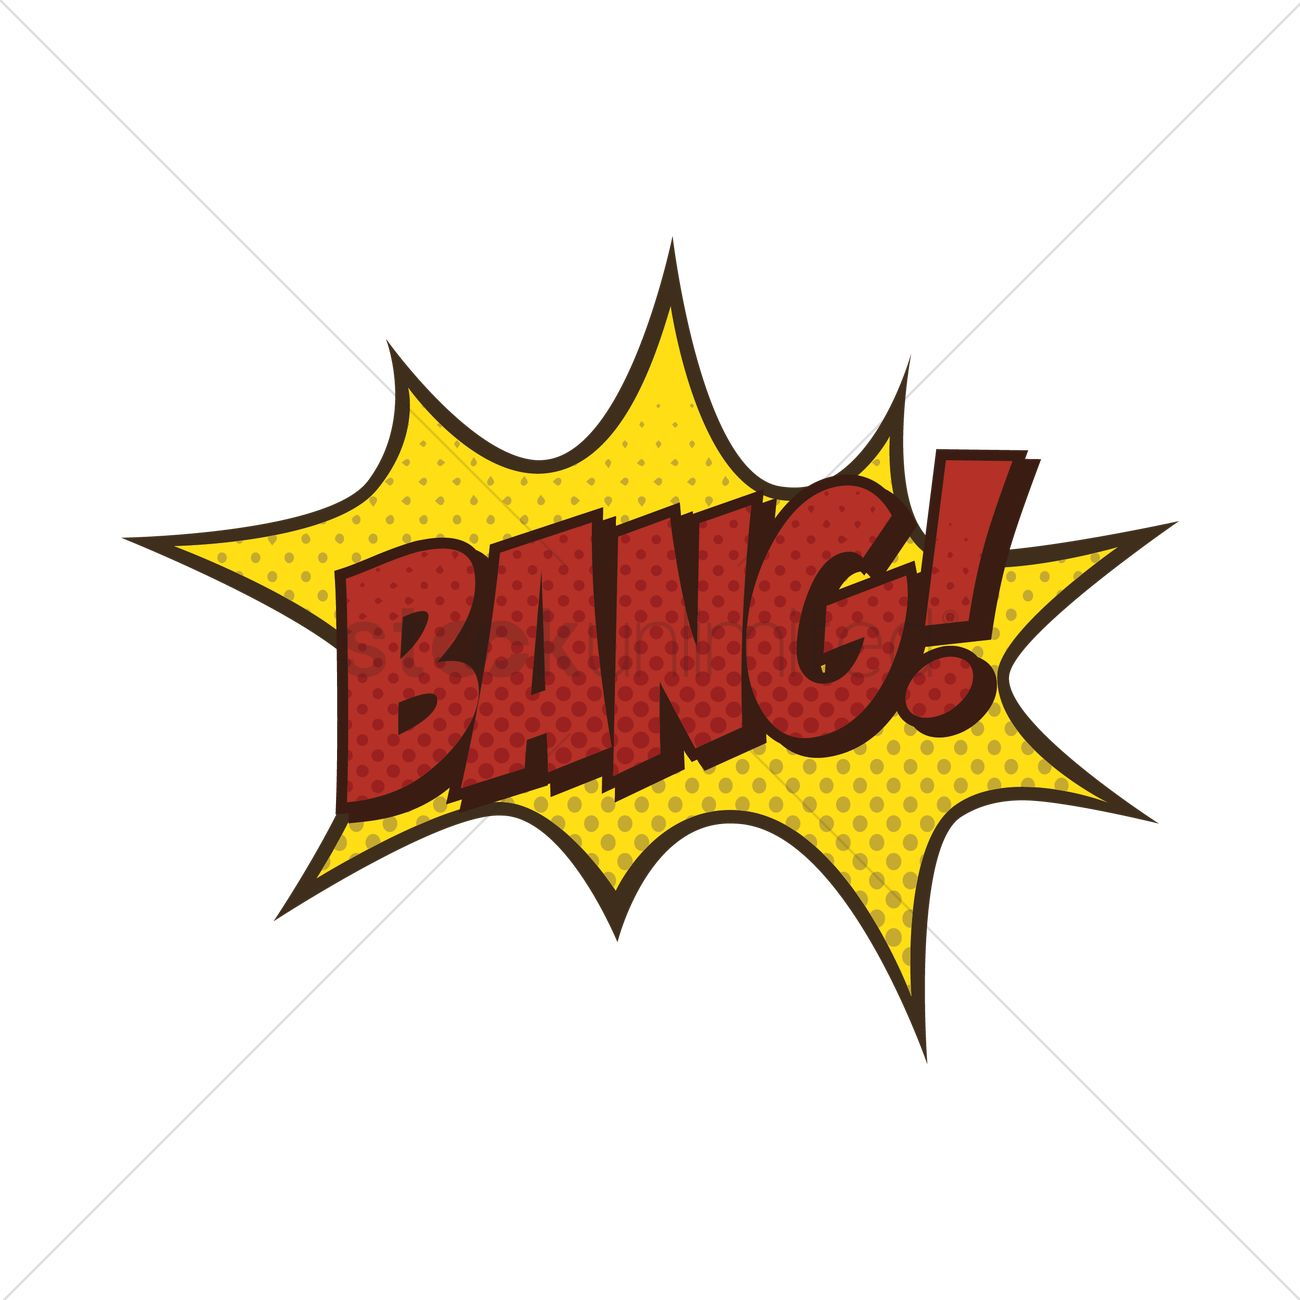 bang text with comic effect vector image 1822951 free vector icons to download free vector icons for powerpoint